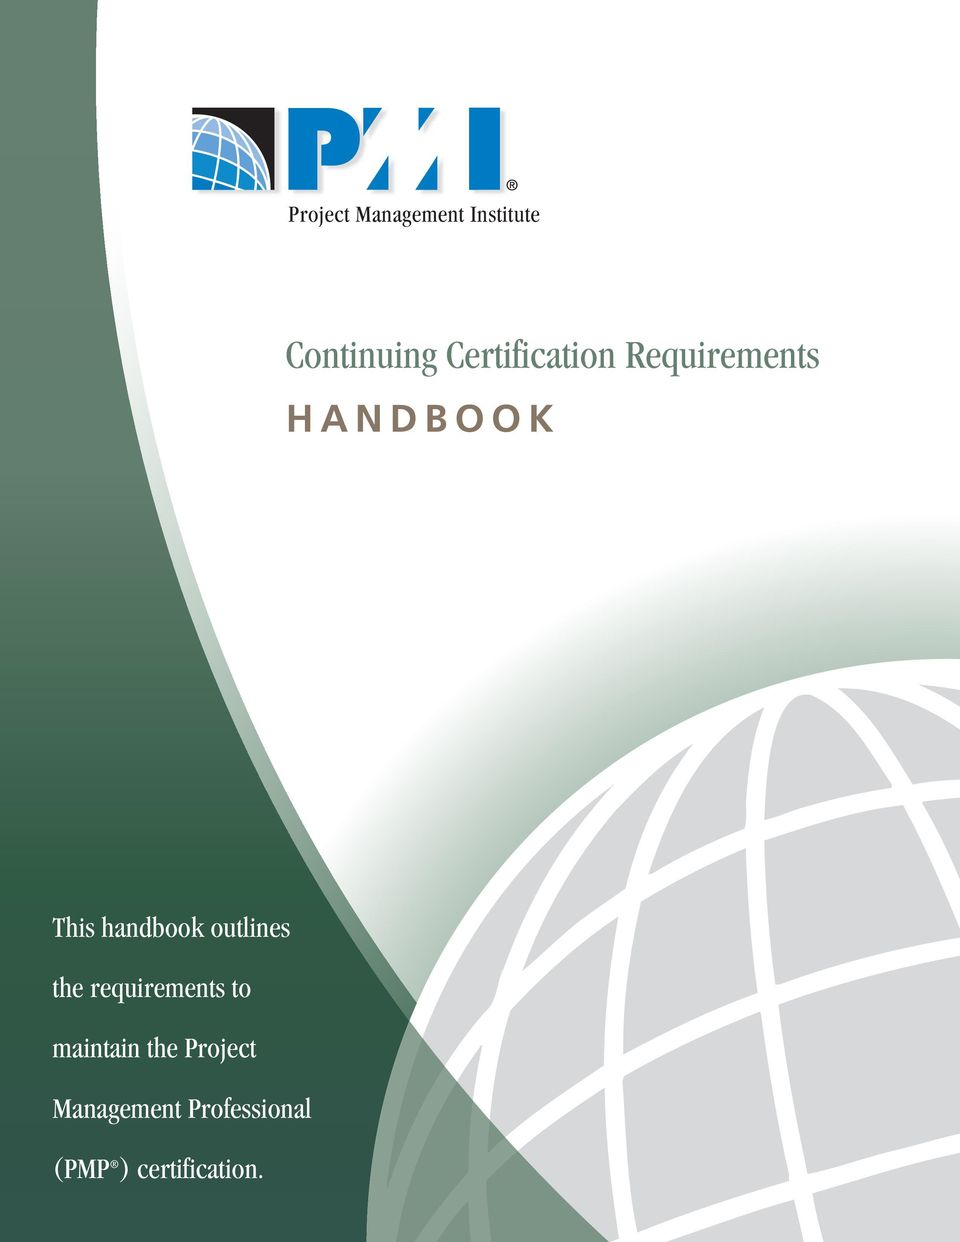 handbook outlines the requirements to maintain